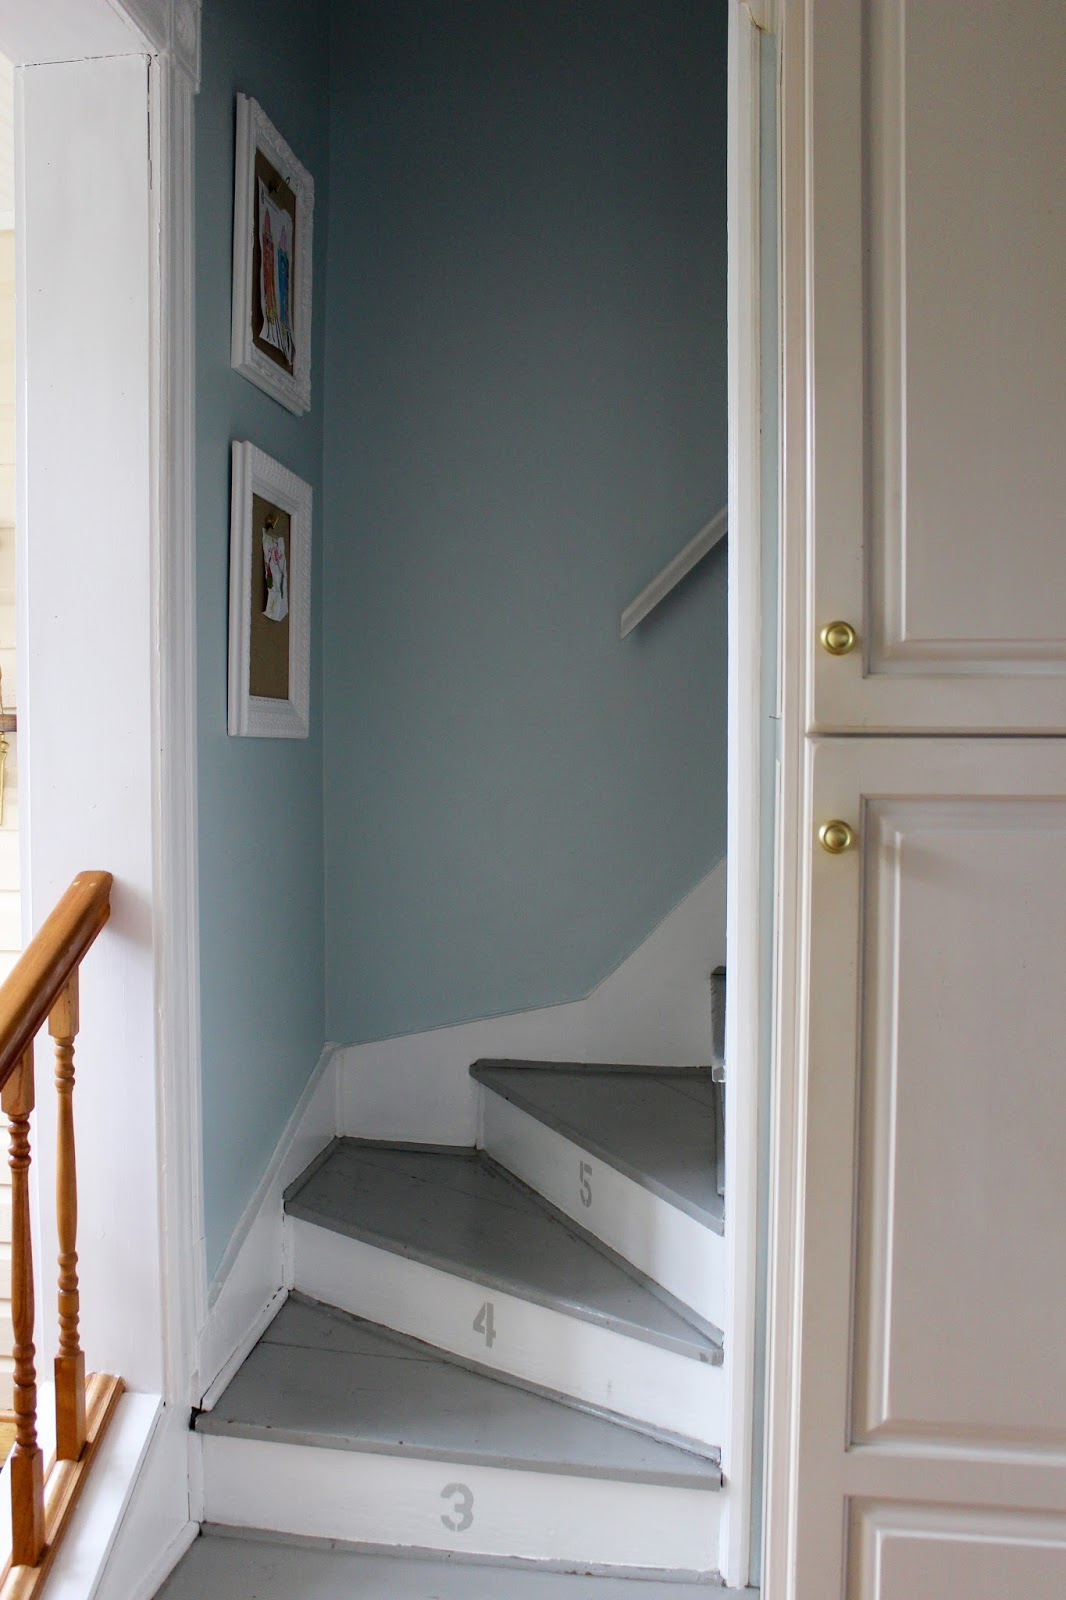 Bon Growing Up, My House Had Two Staircases, And My Parents Loved It: My Sister  And I Could Access Our Bedrooms Without Having To Traipse Up The Front  Stairs ...